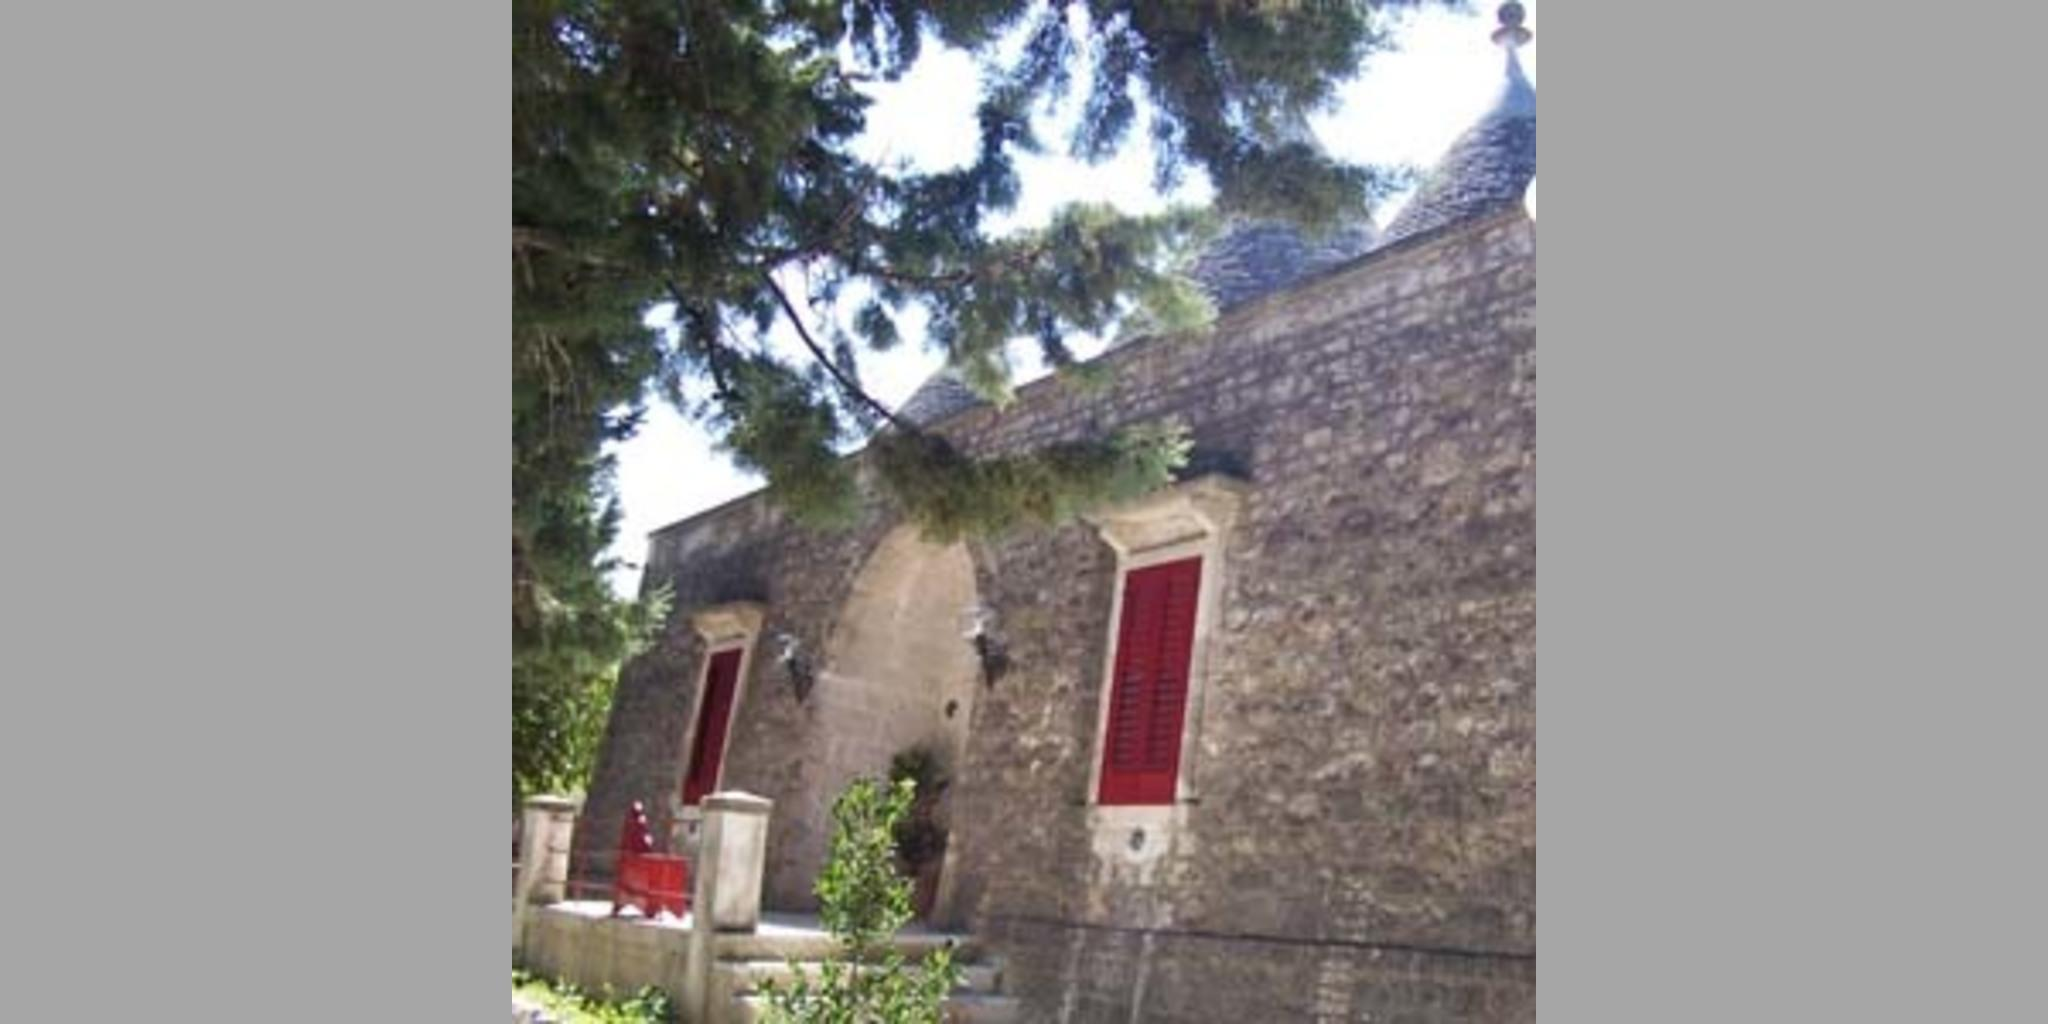 Bed & Breakfast Locorotondo - Gabriele